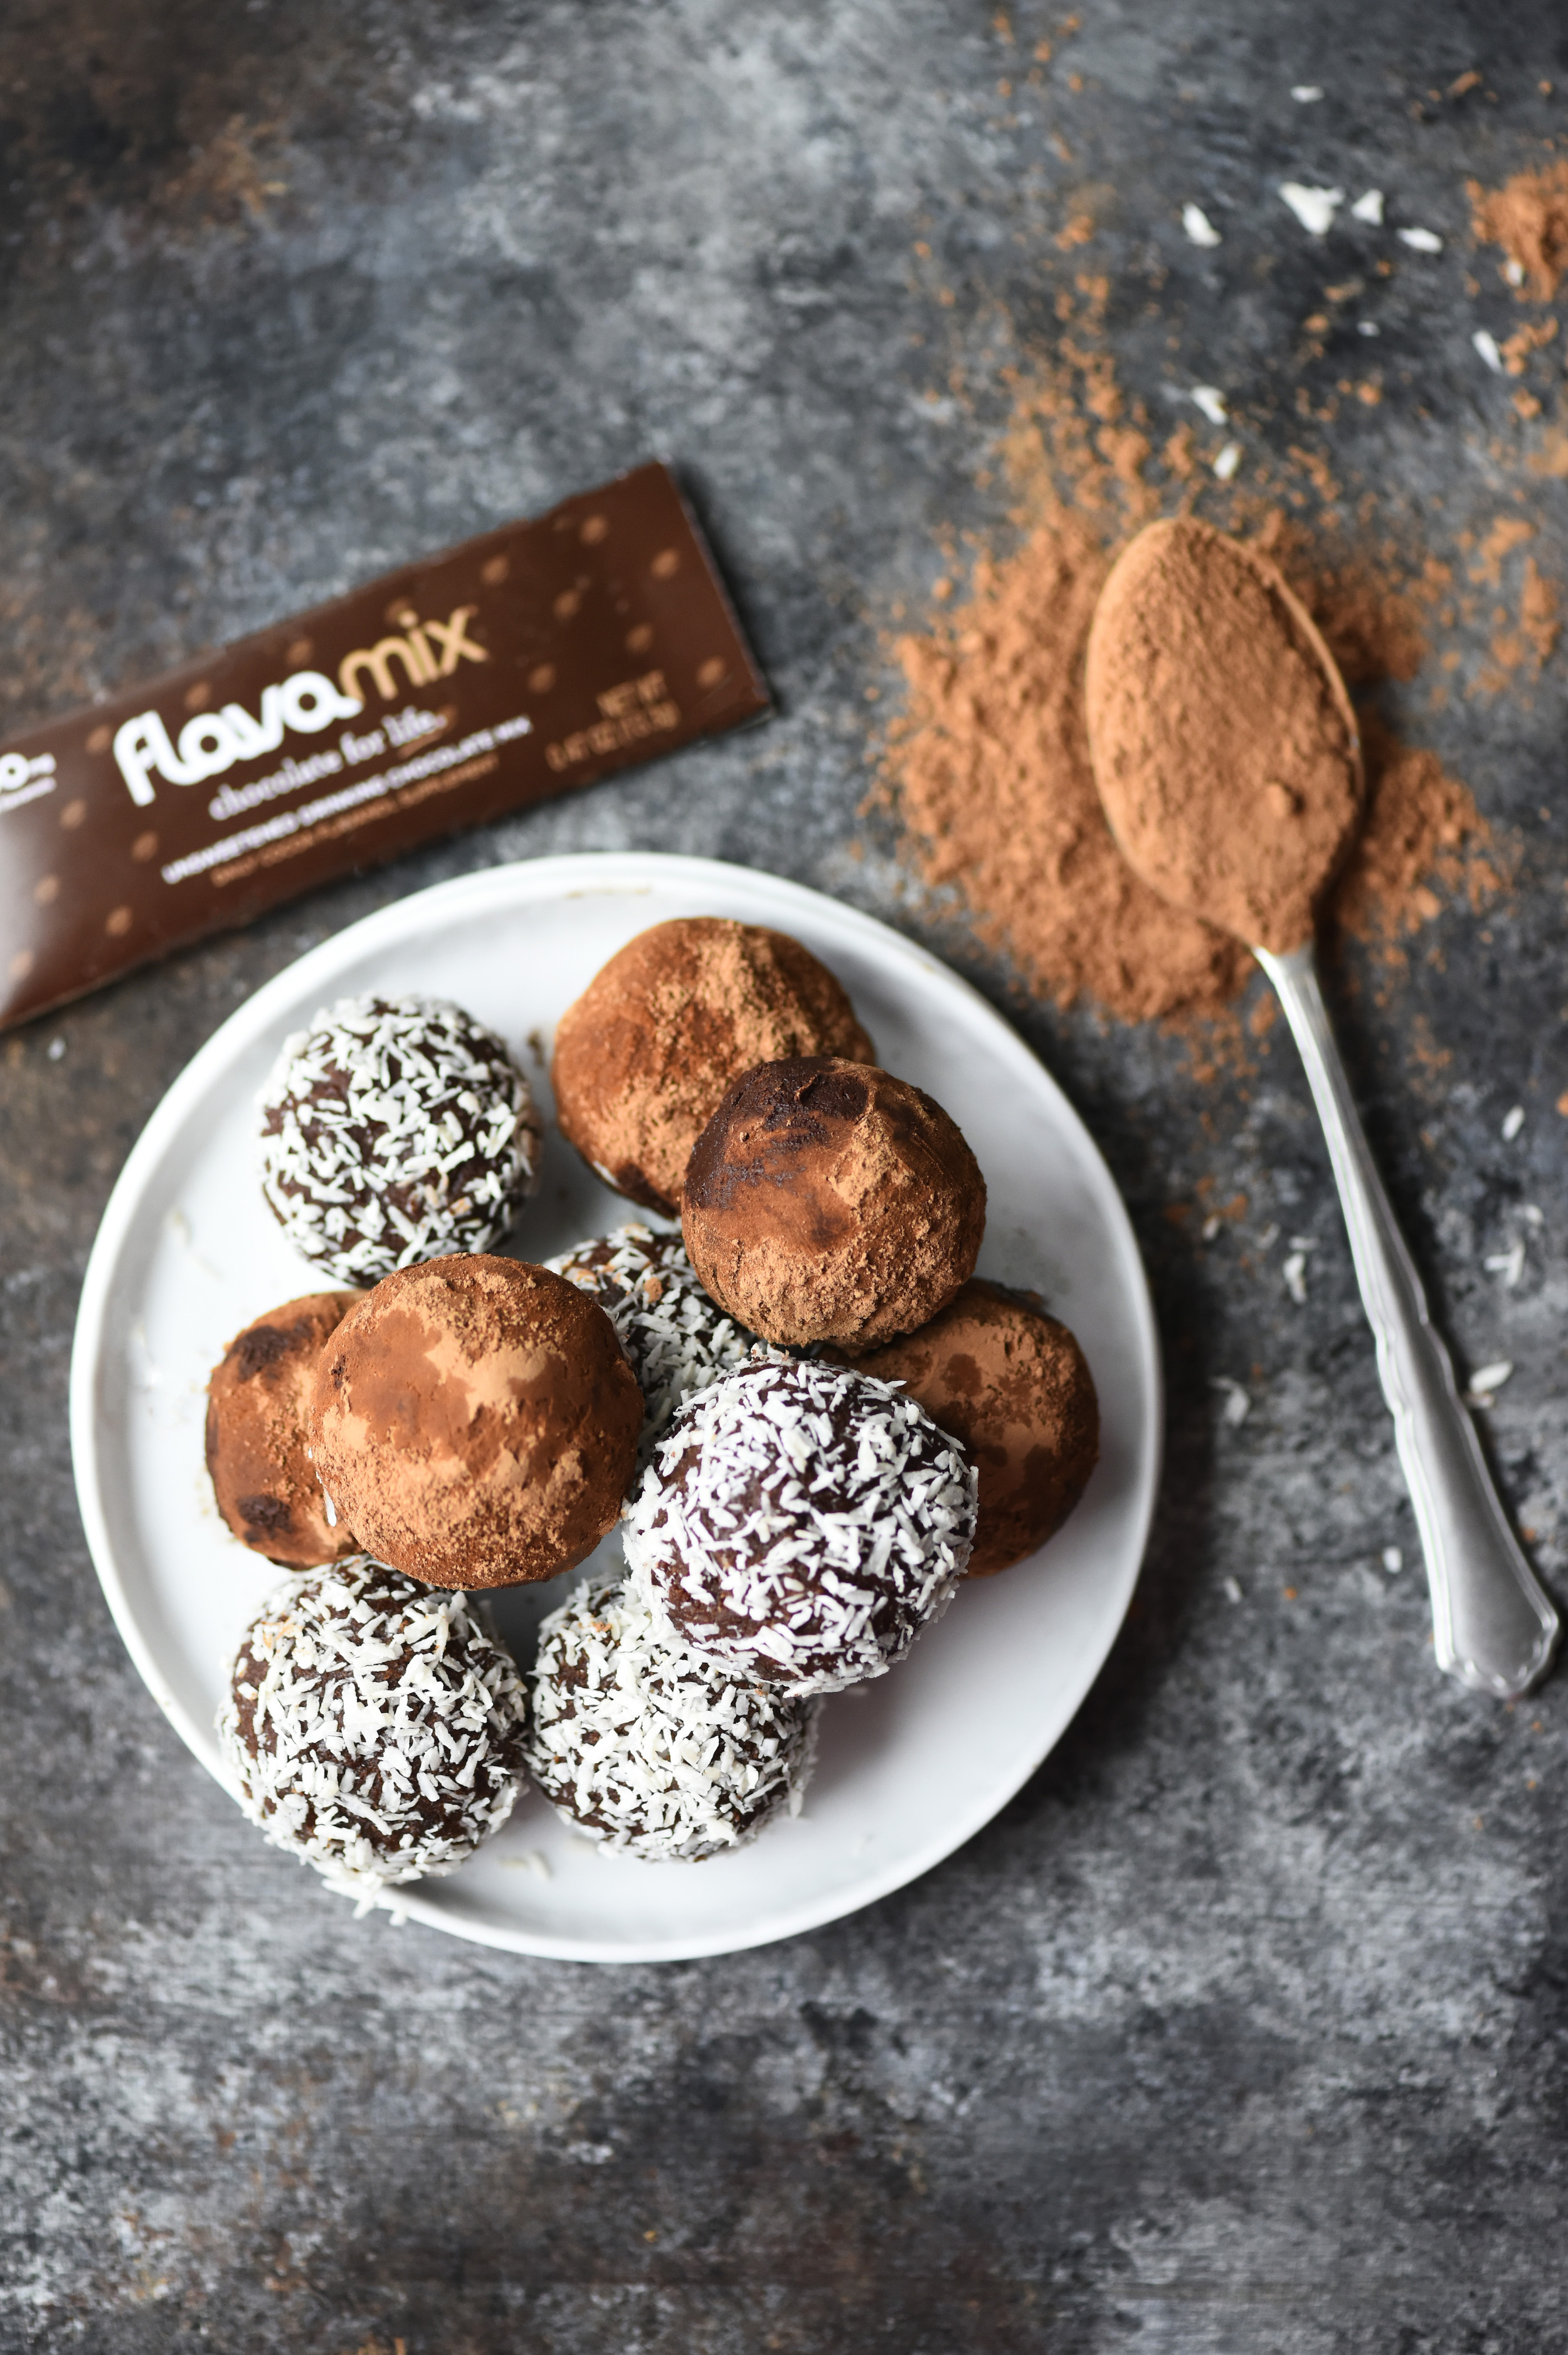 Chocolate Coconut Date Energy Bites with FlavaMix Unsweetened Drinking Chocolate, 900mg Cocoa Flavanols